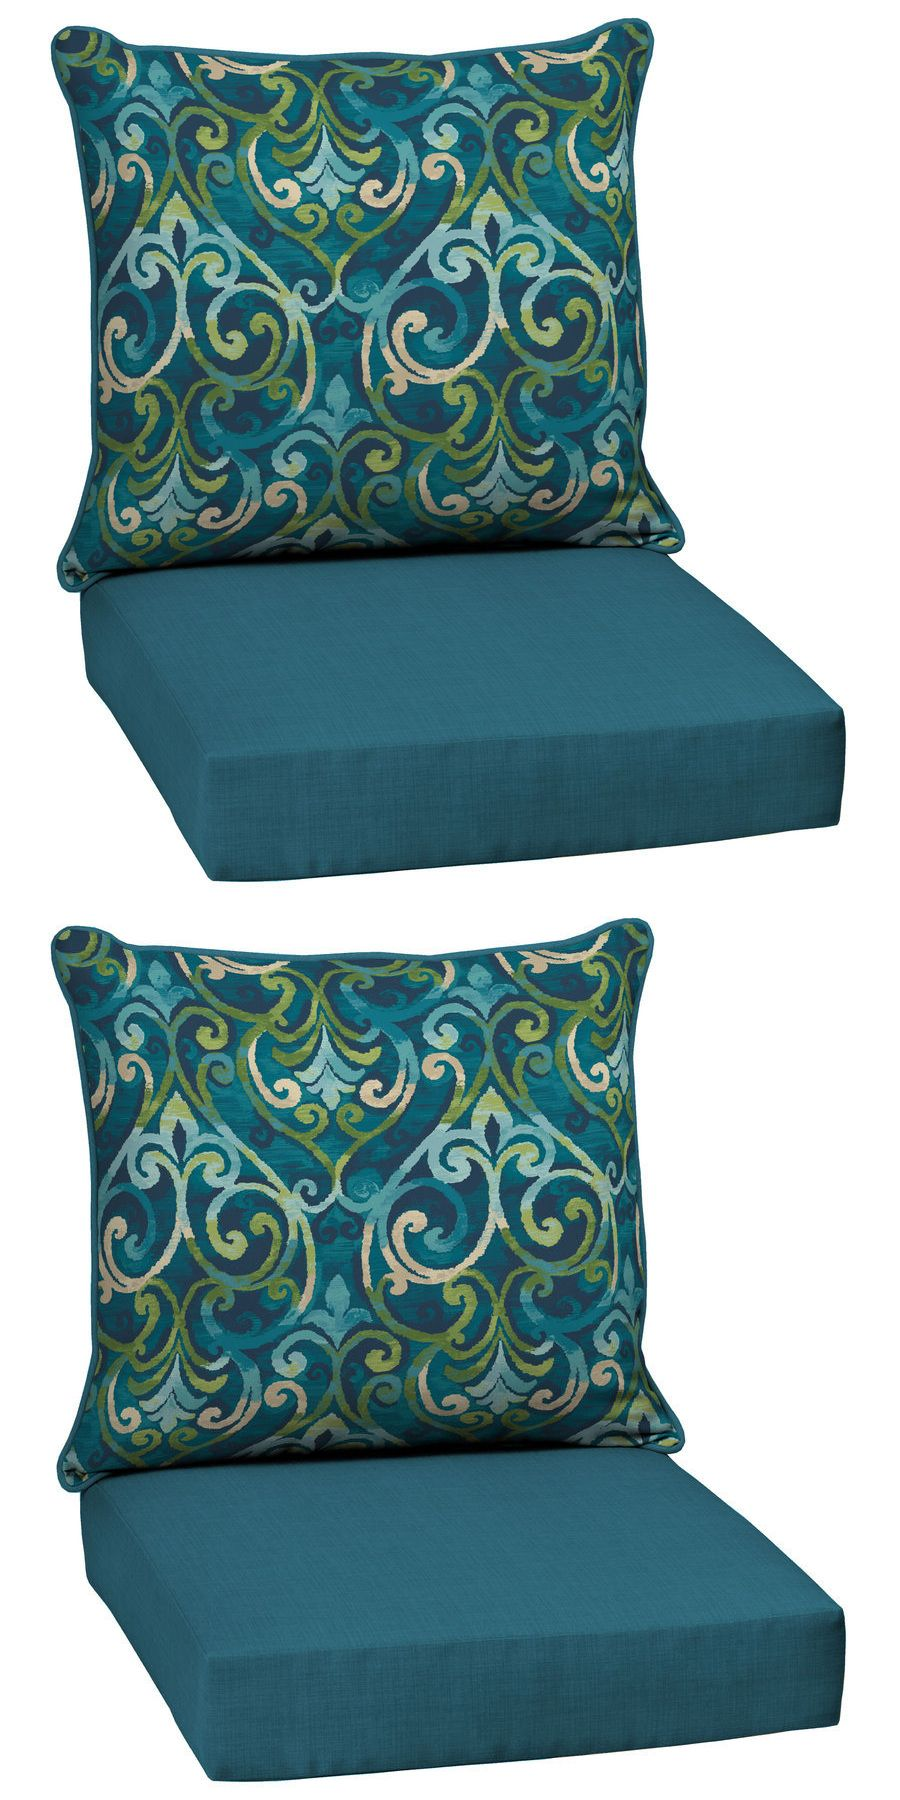 Cushions And Pads 79683: Garden Treasures Damask Blue Replacement Cushion  Outdoor Patio Deep Seat Chair